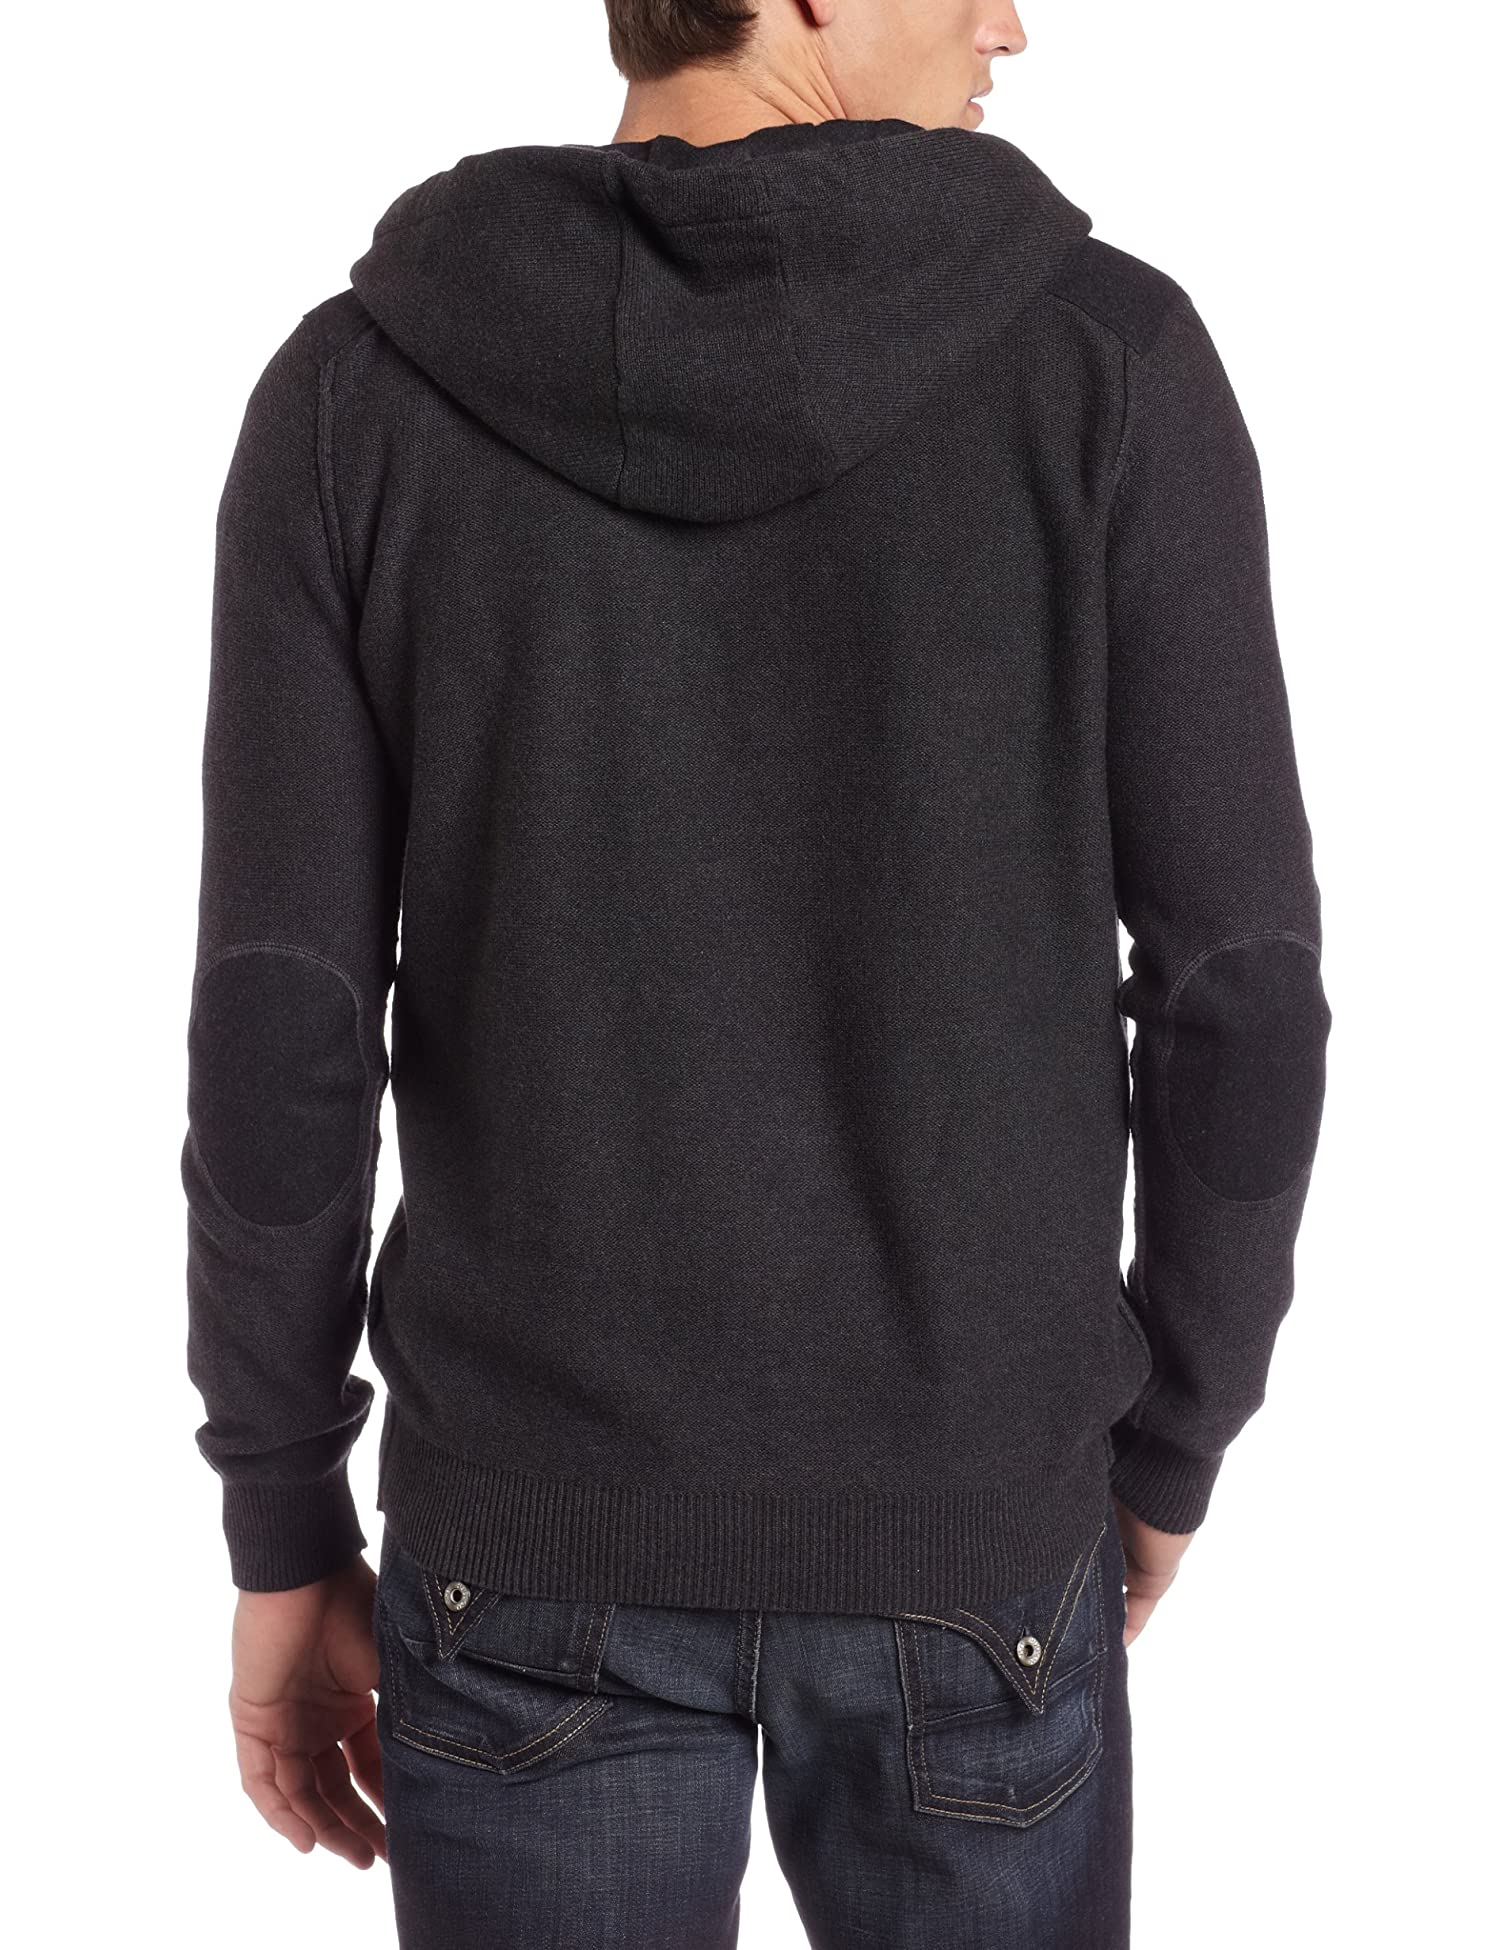 Urban Men's Guide: Trendy Hoodies for this Winter